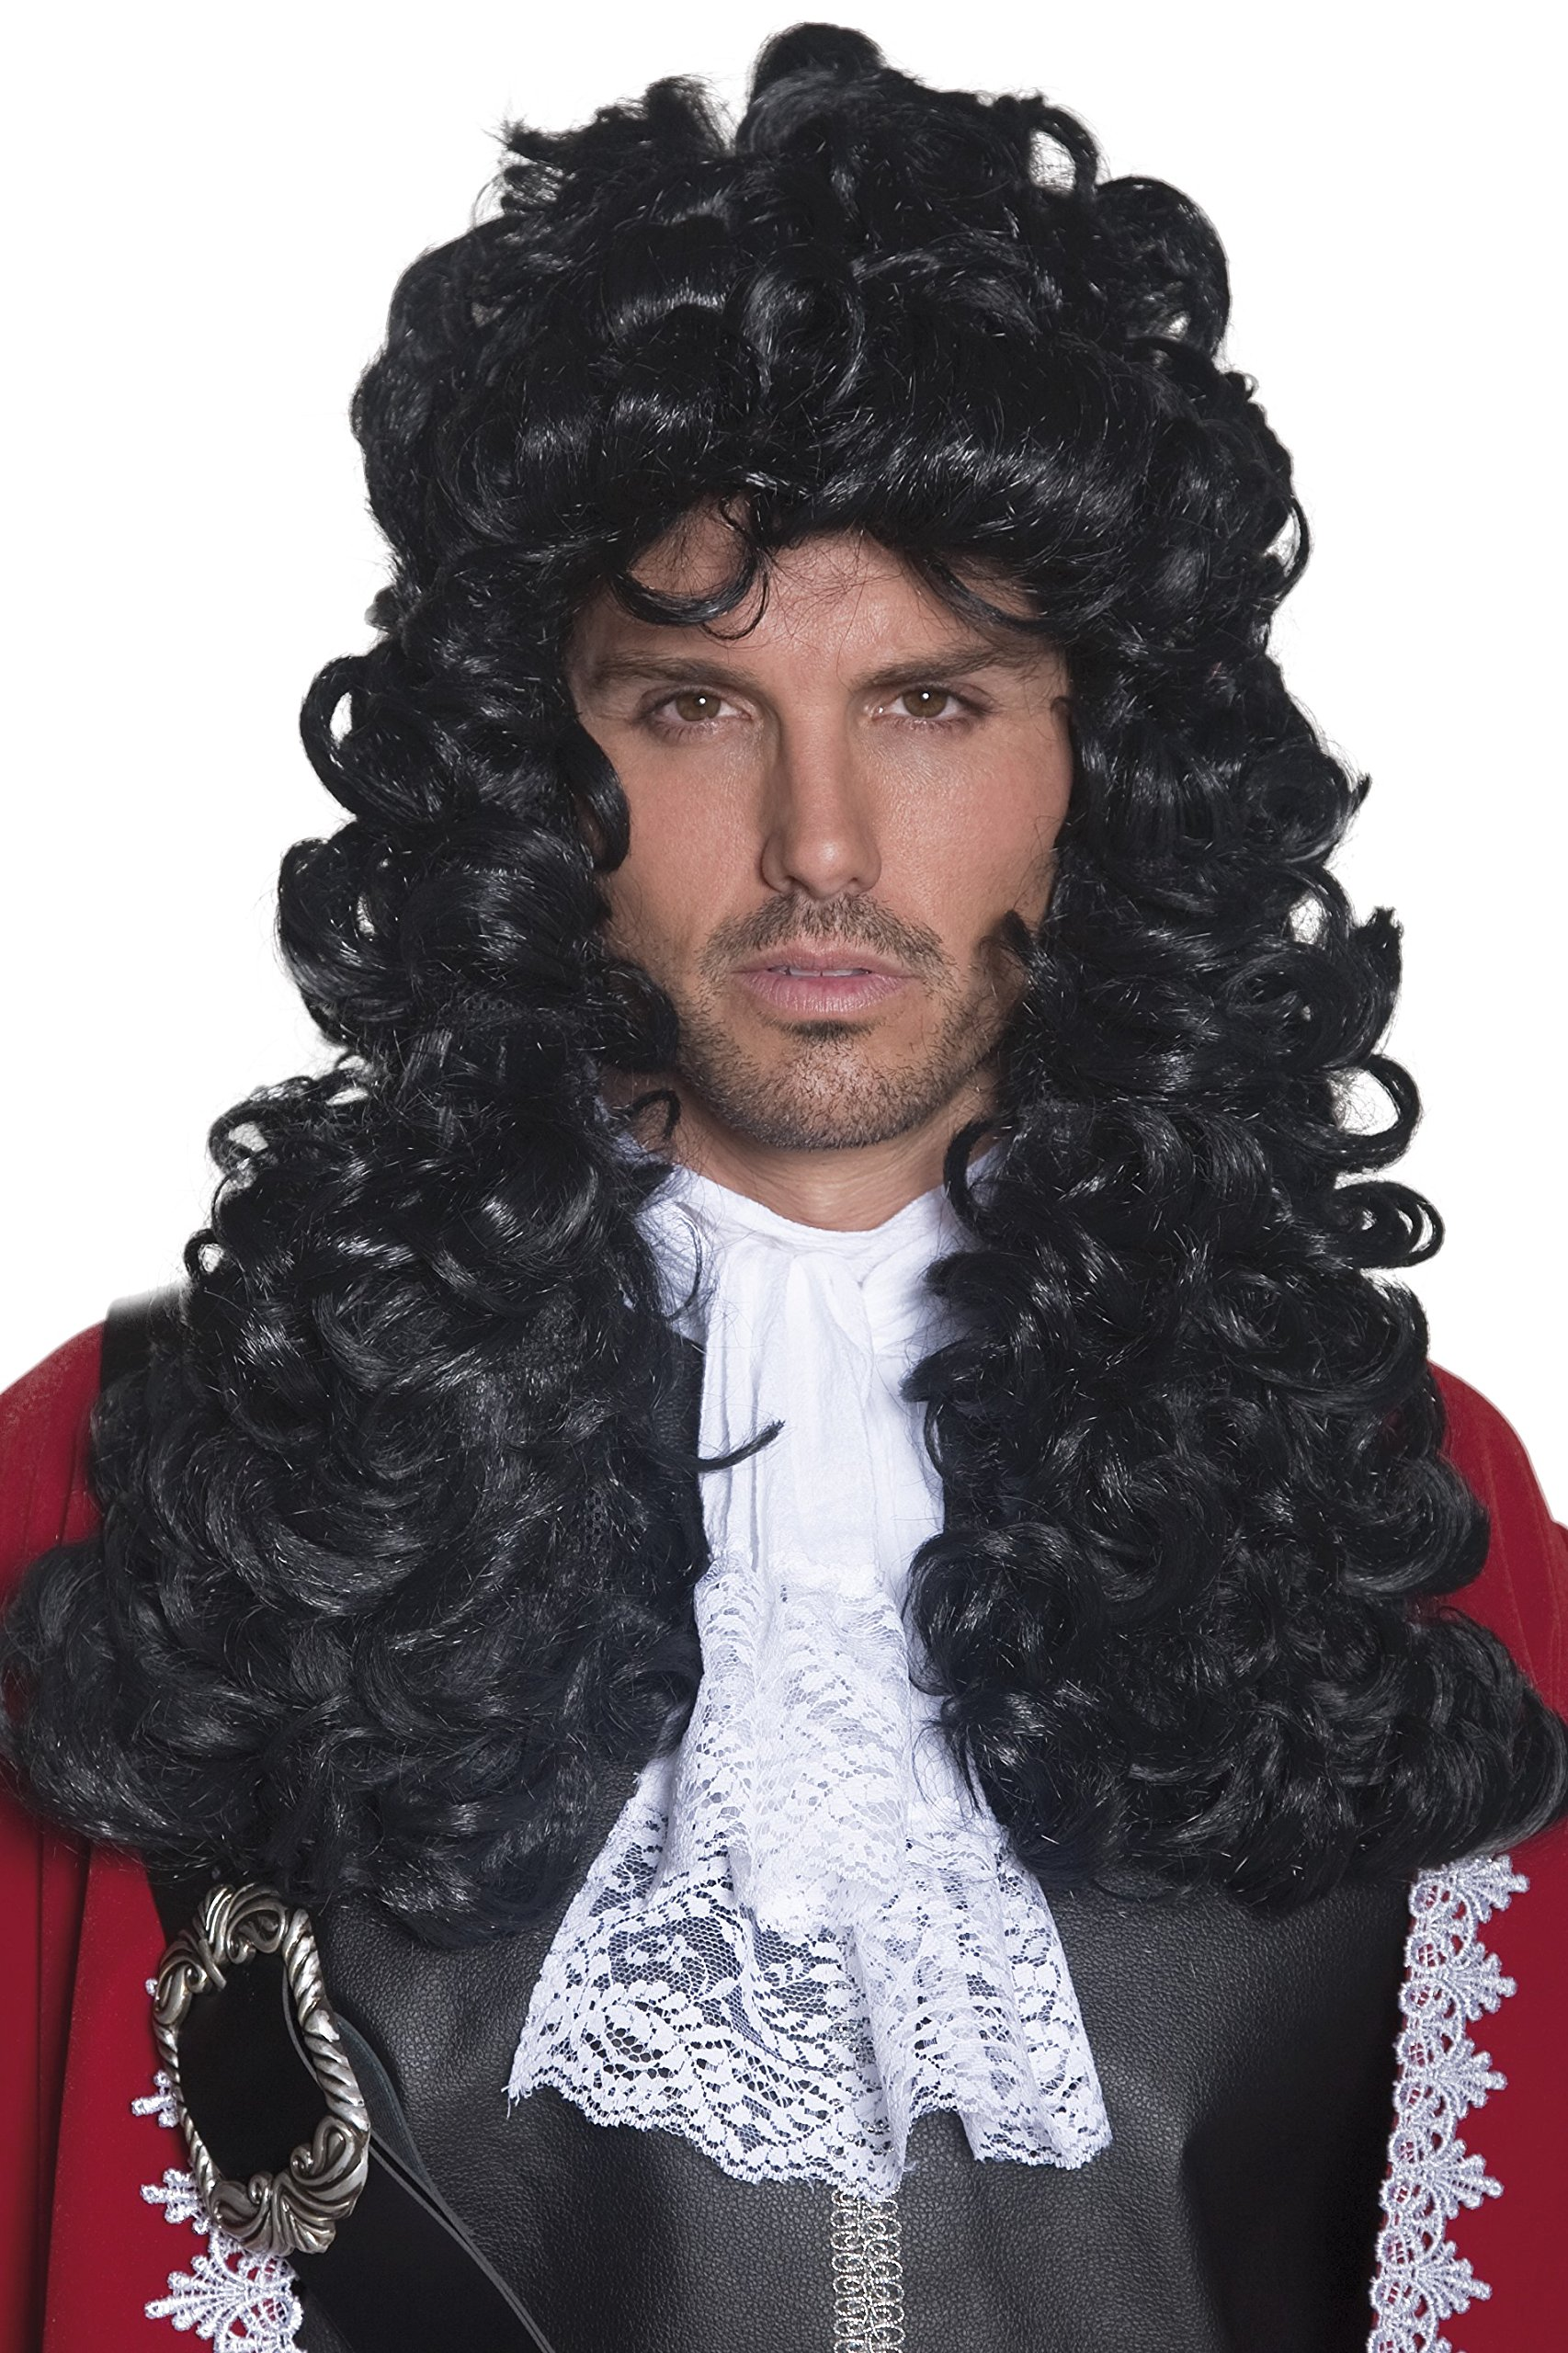 Smiffy's Men's Pirate Captain Wig Long and Curly